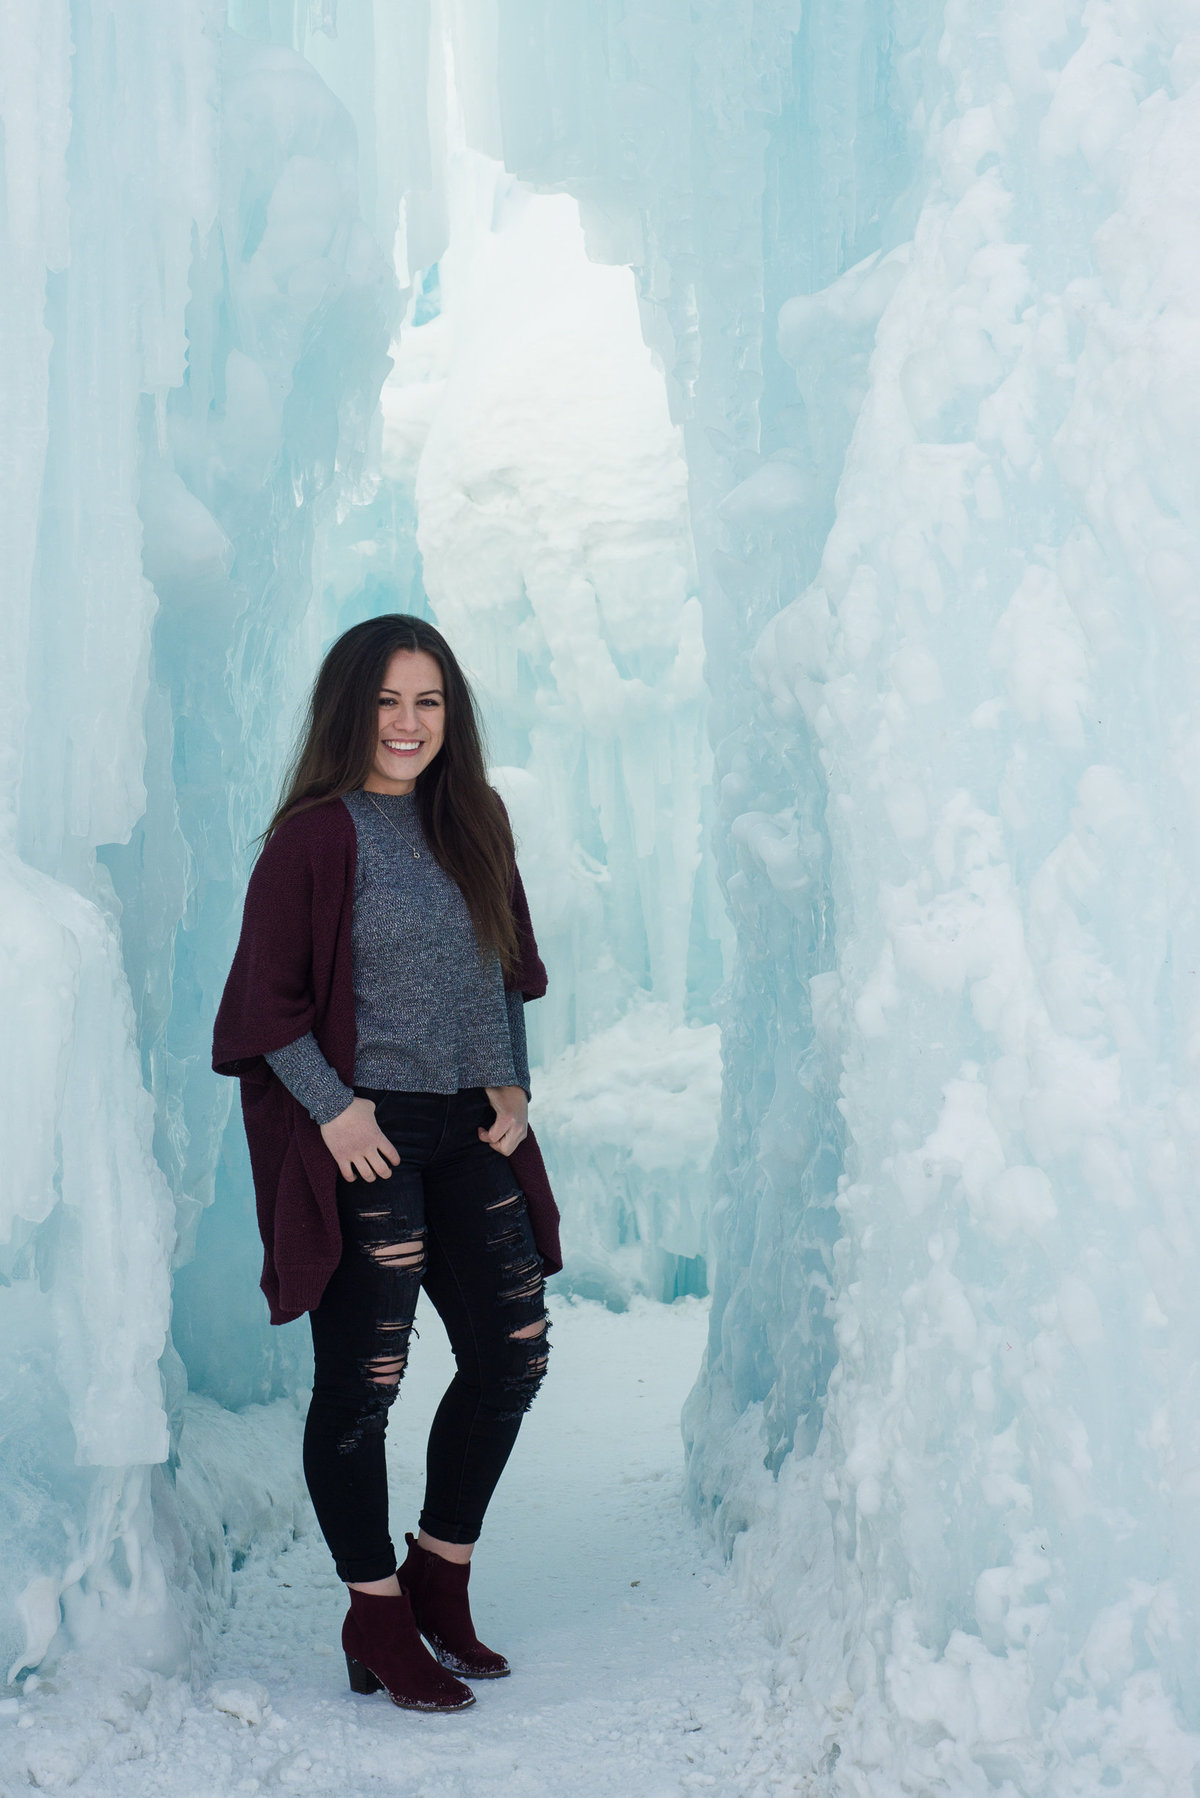 Edmonton-Sherwood-Park-Graduation-Lifestyle-Senior-Photographer_Ice-Castles-YEG-10